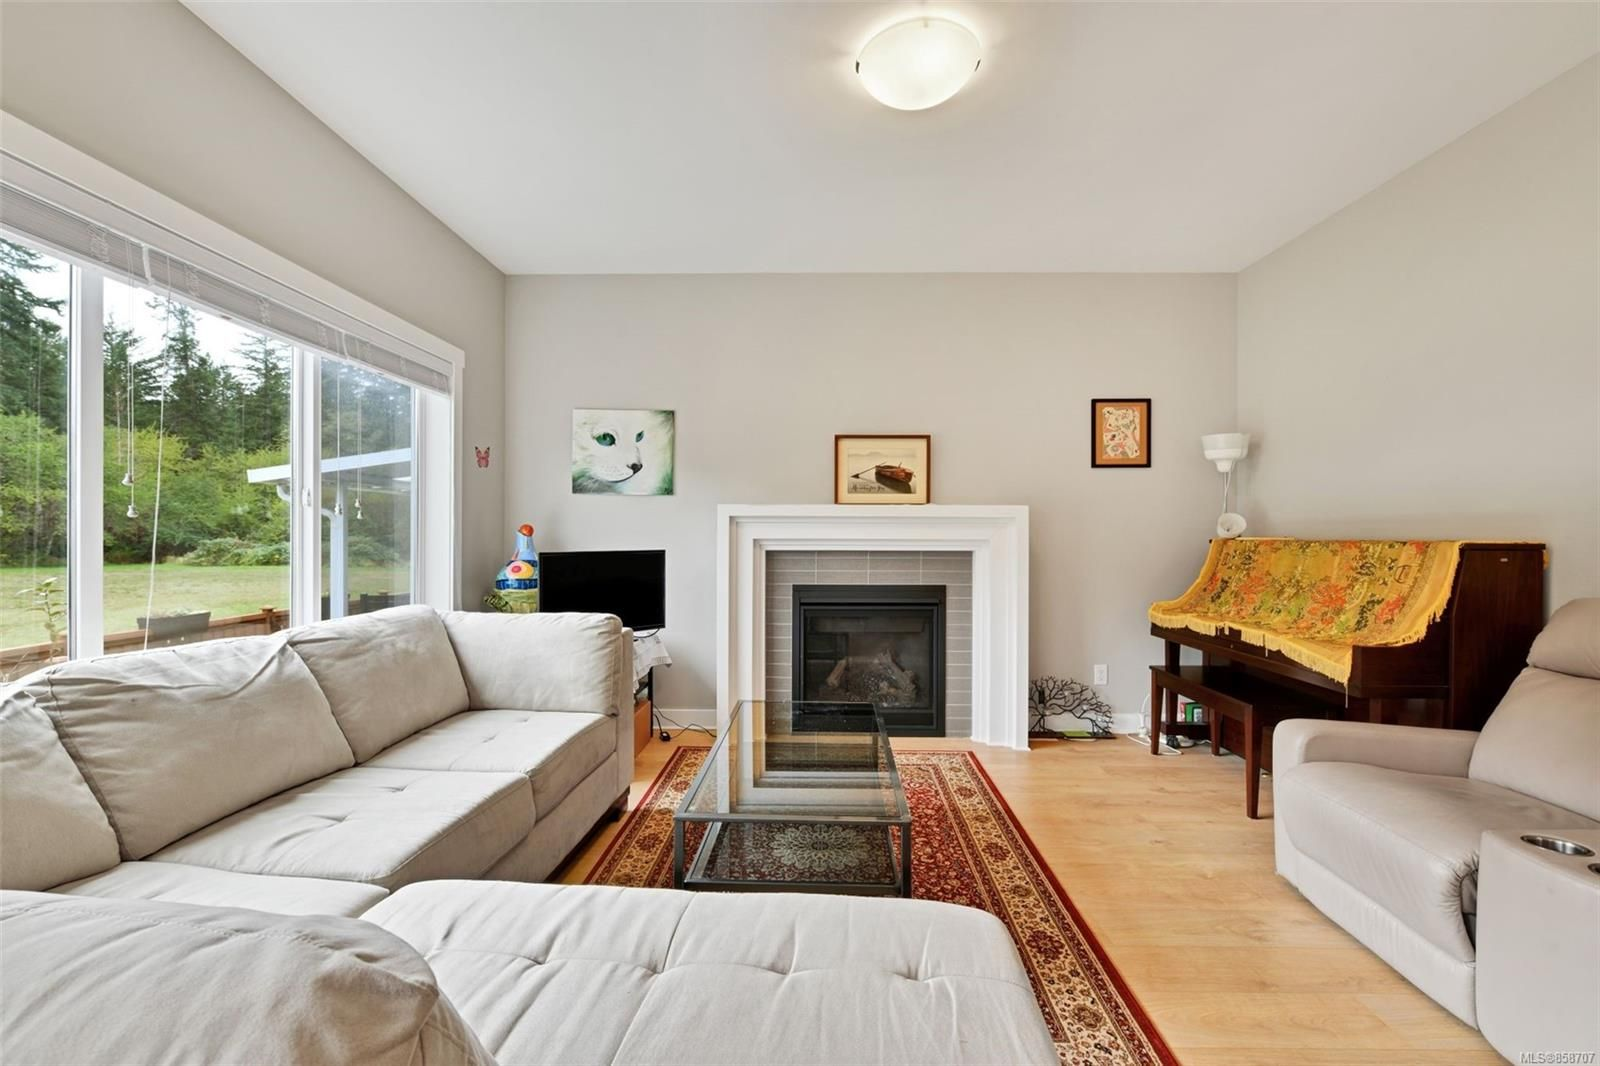 Photo 3: Photos: 1262 McLeod Pl in : La Happy Valley House for sale (Langford)  : MLS®# 858707